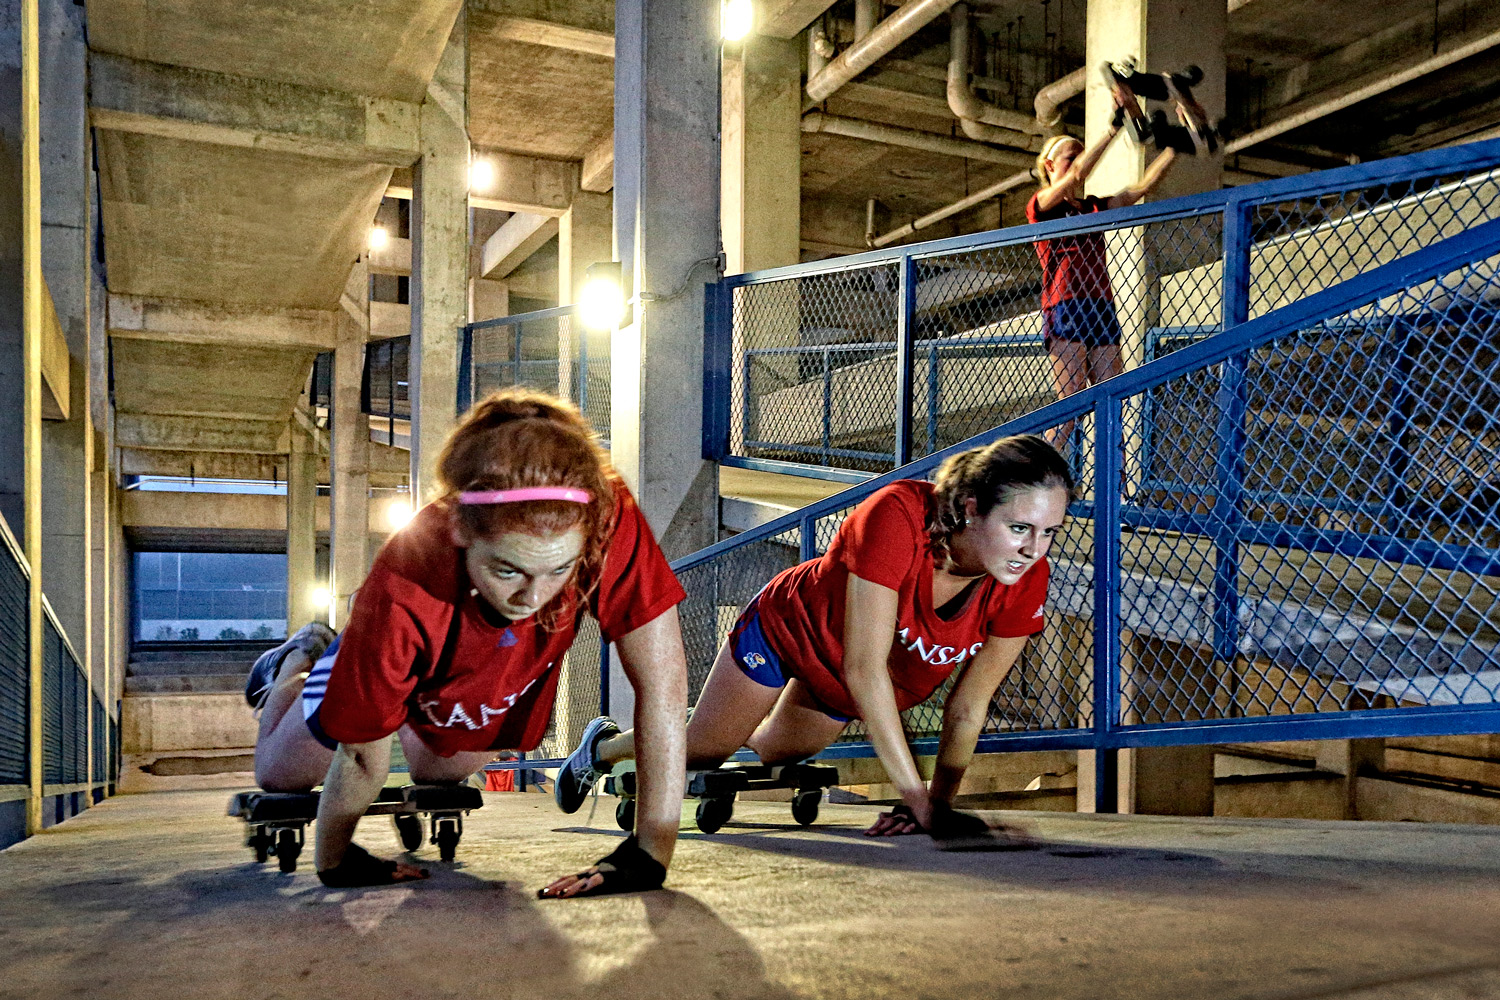 Sammie Schurig and Madison Straight pull themselves up a ramp at Memorial Stadium